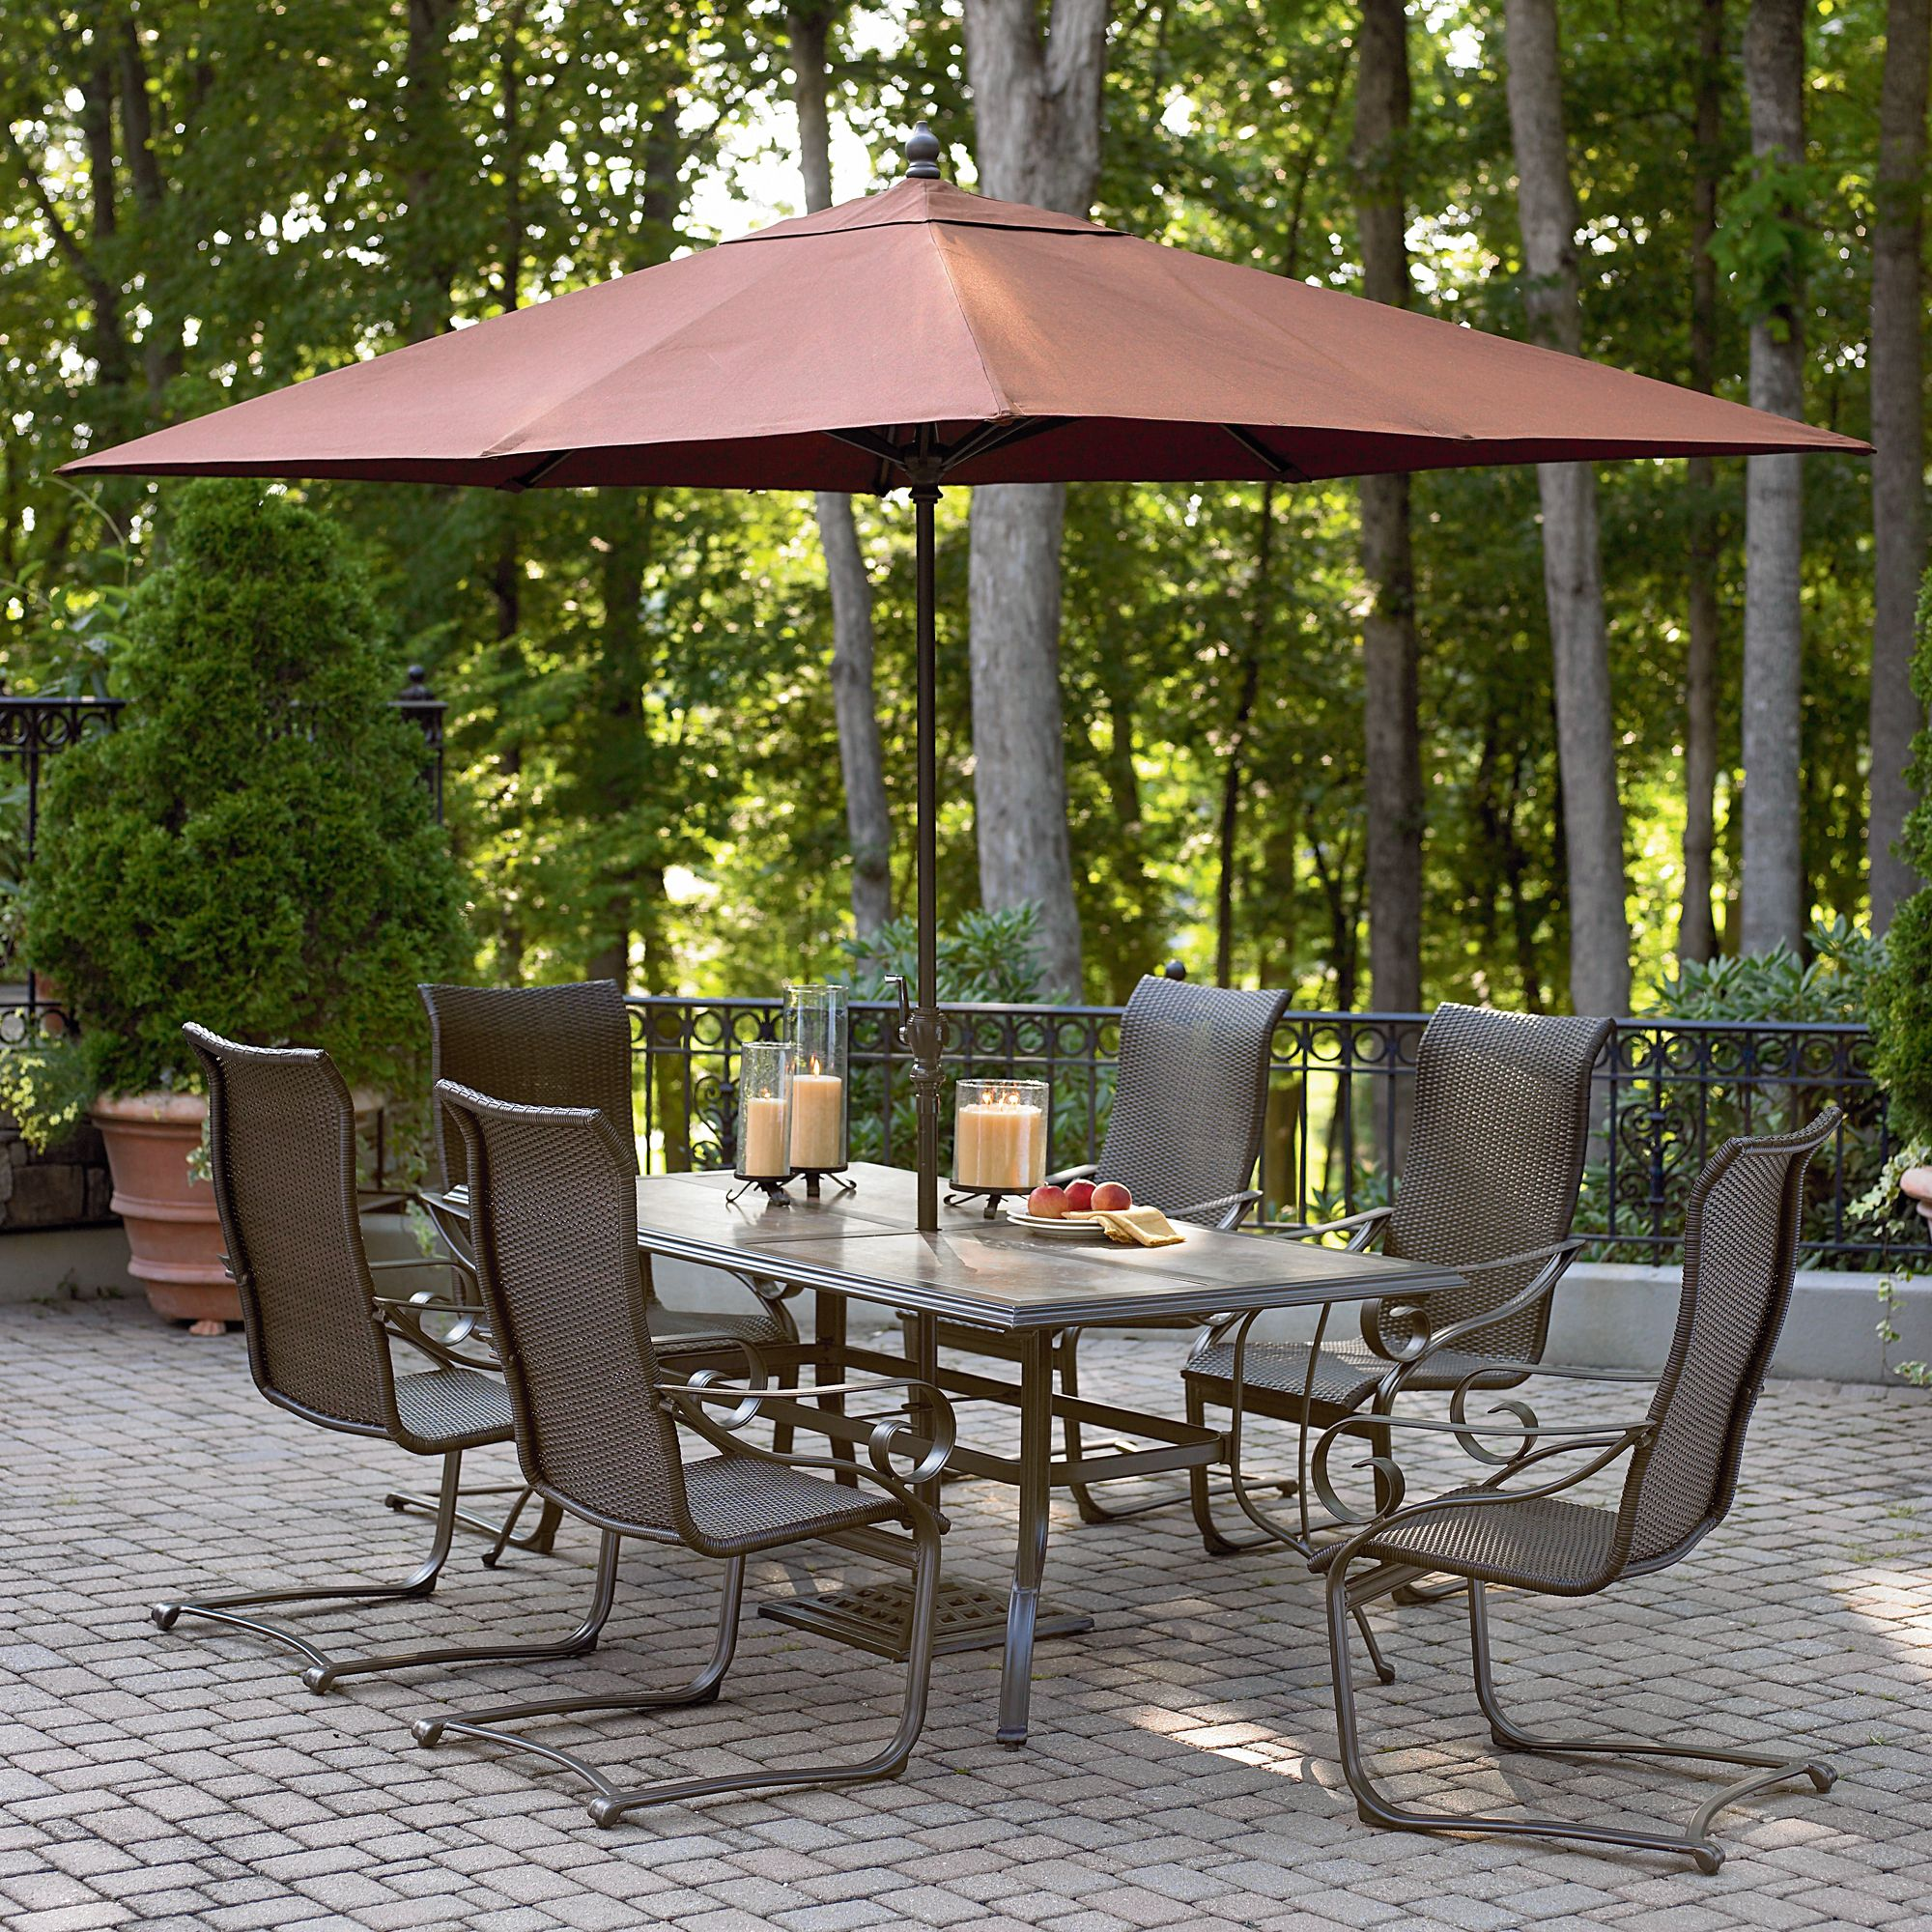 Garden Oasis Essex 9 Ft. Umbrella - Outdoor Living